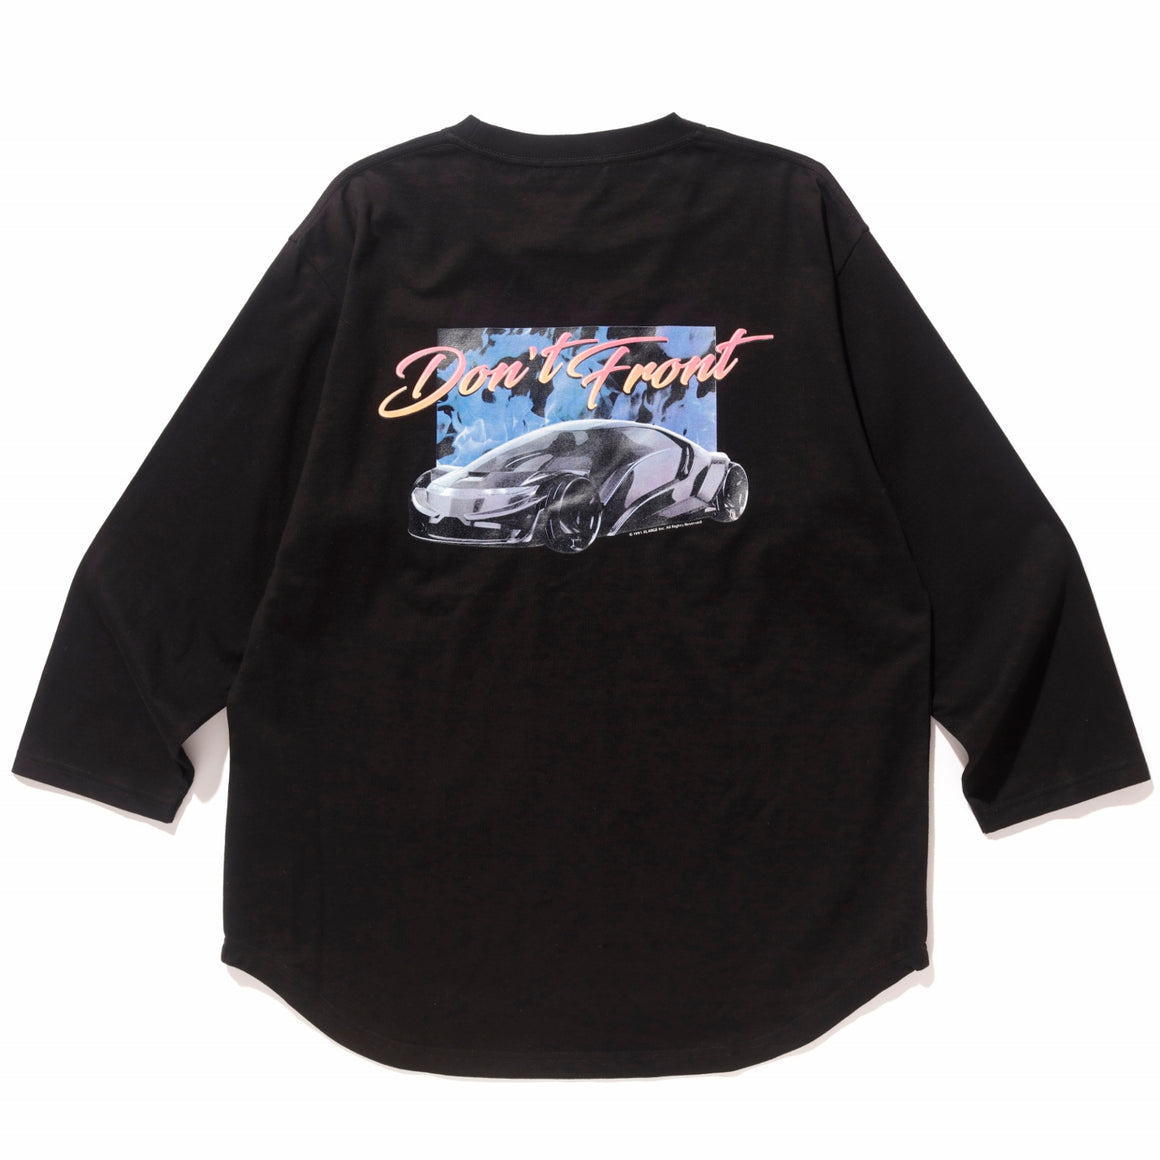 DONT FRONT 7L POCKET TEE T-SHIRT XLARGE